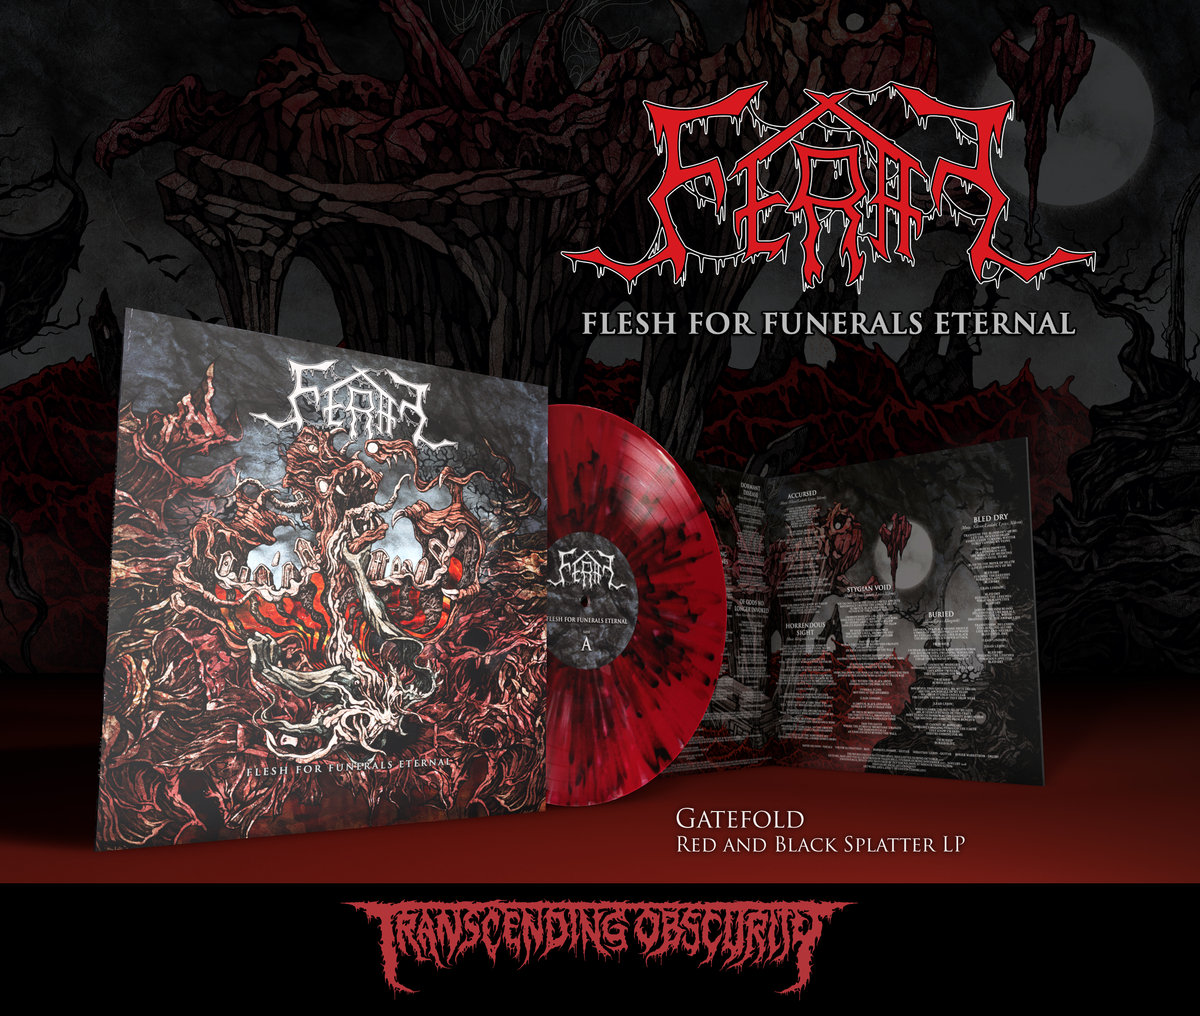 FERAL (Sweden) - 'Flesh For Funerals Eternal' Gatefold Red and Black Splatter LP (Limited to 150)